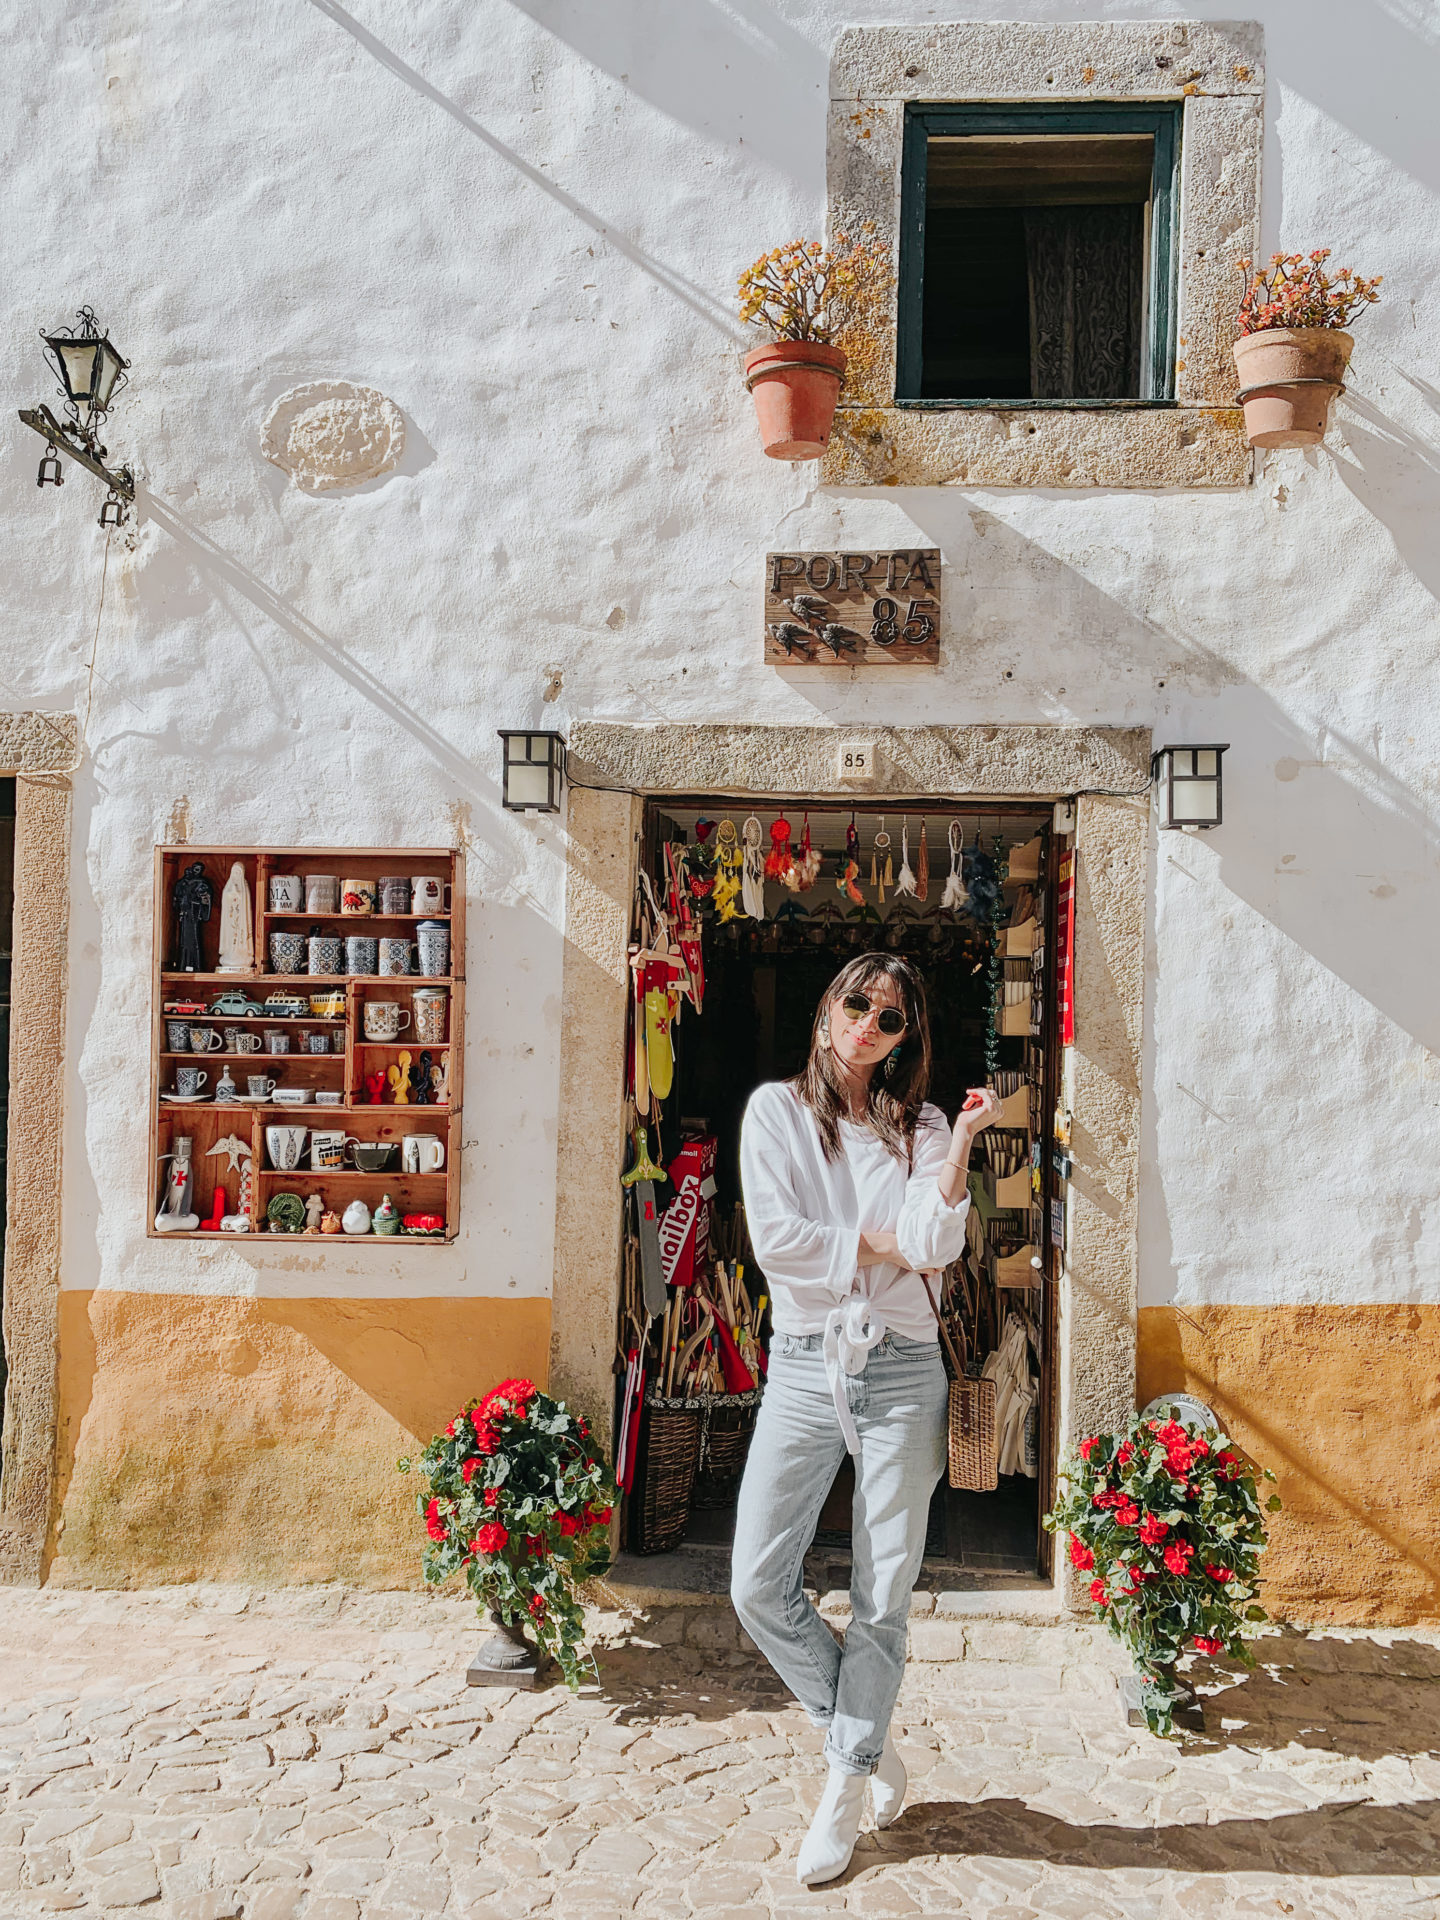 A Day In Óbidos Portugal - Ana Free Gift Shop - thecasualfree.com